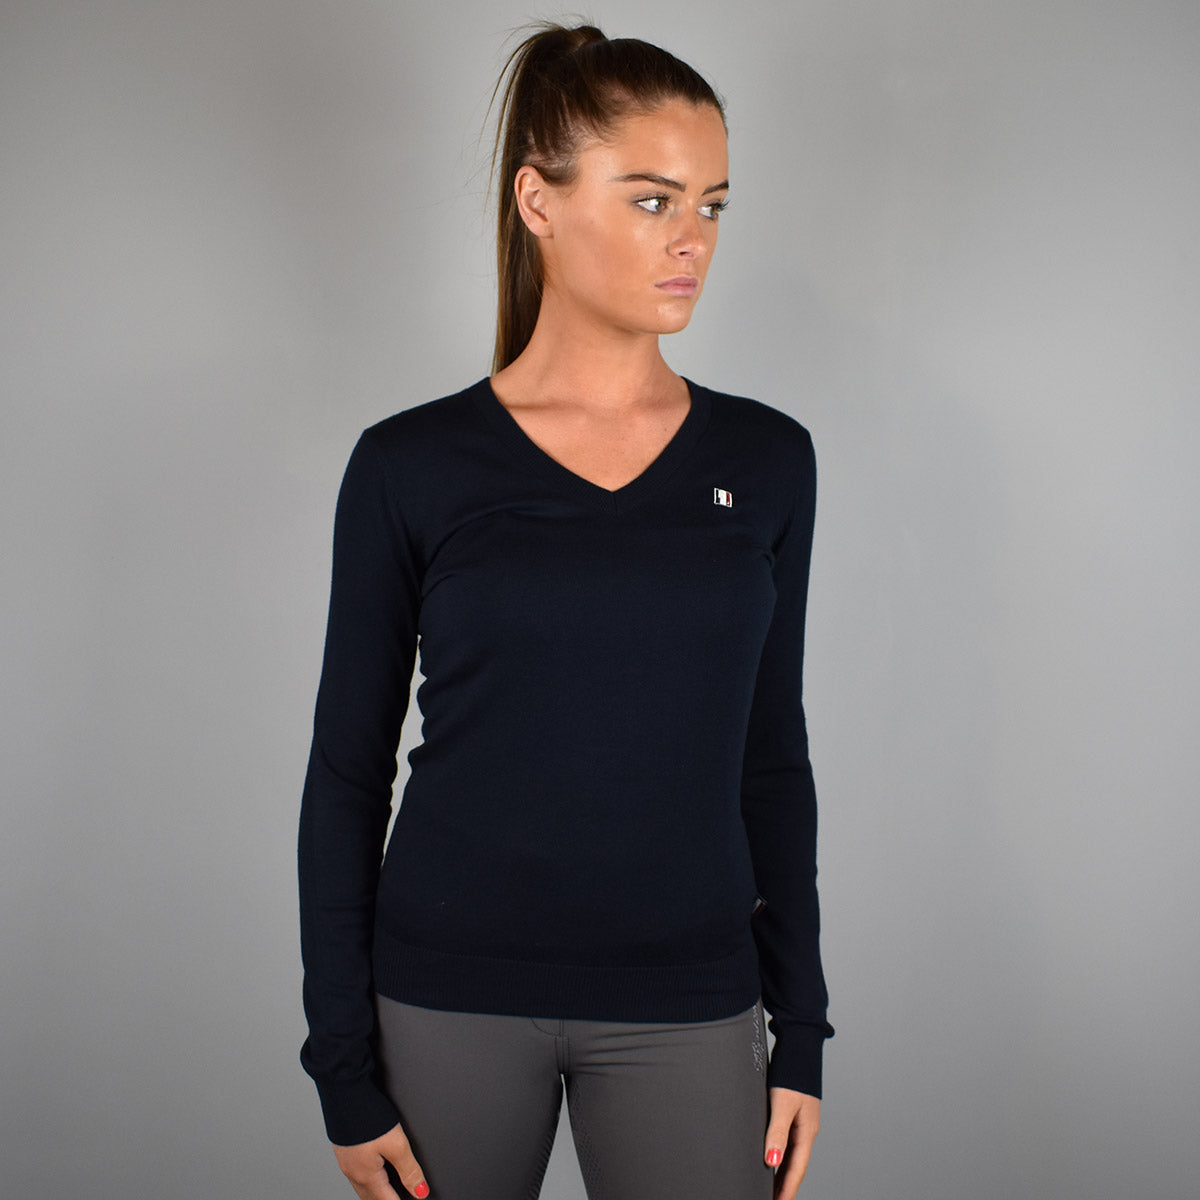 Kingsland Classic Ladies V-Neck Sweater in Navy